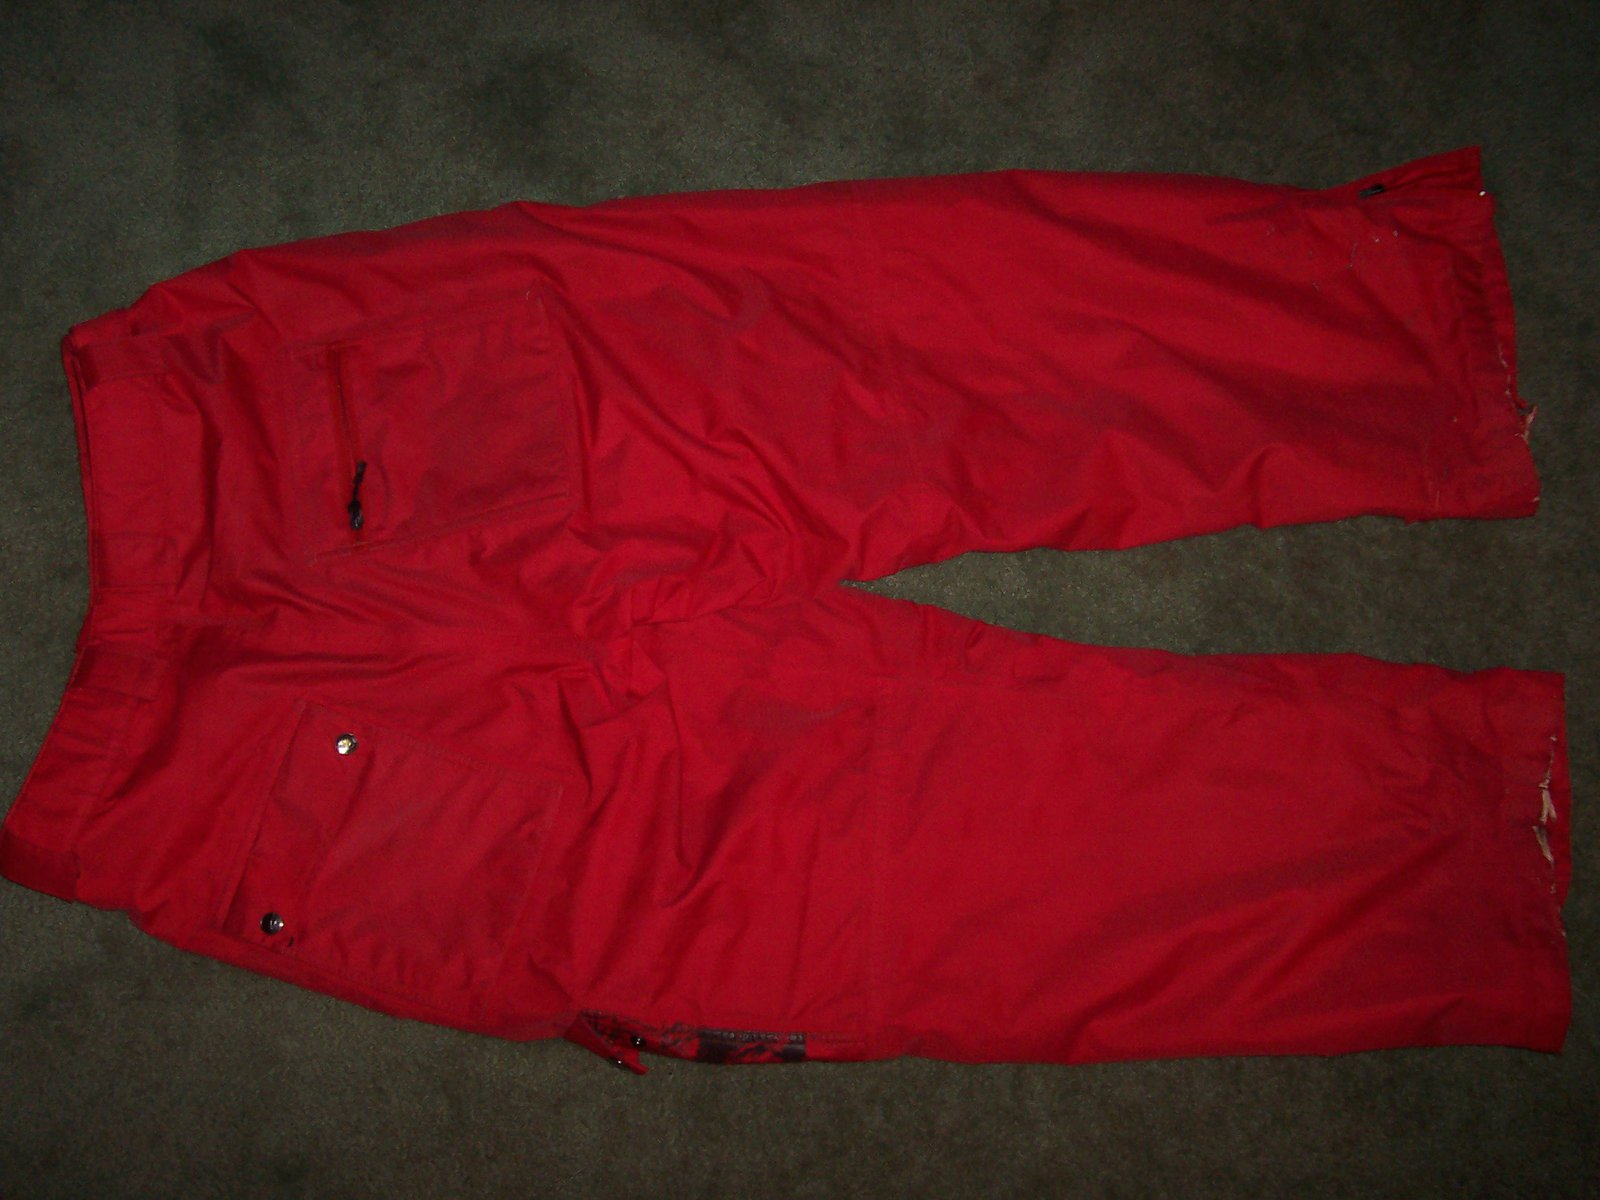 Oakley pants for sale